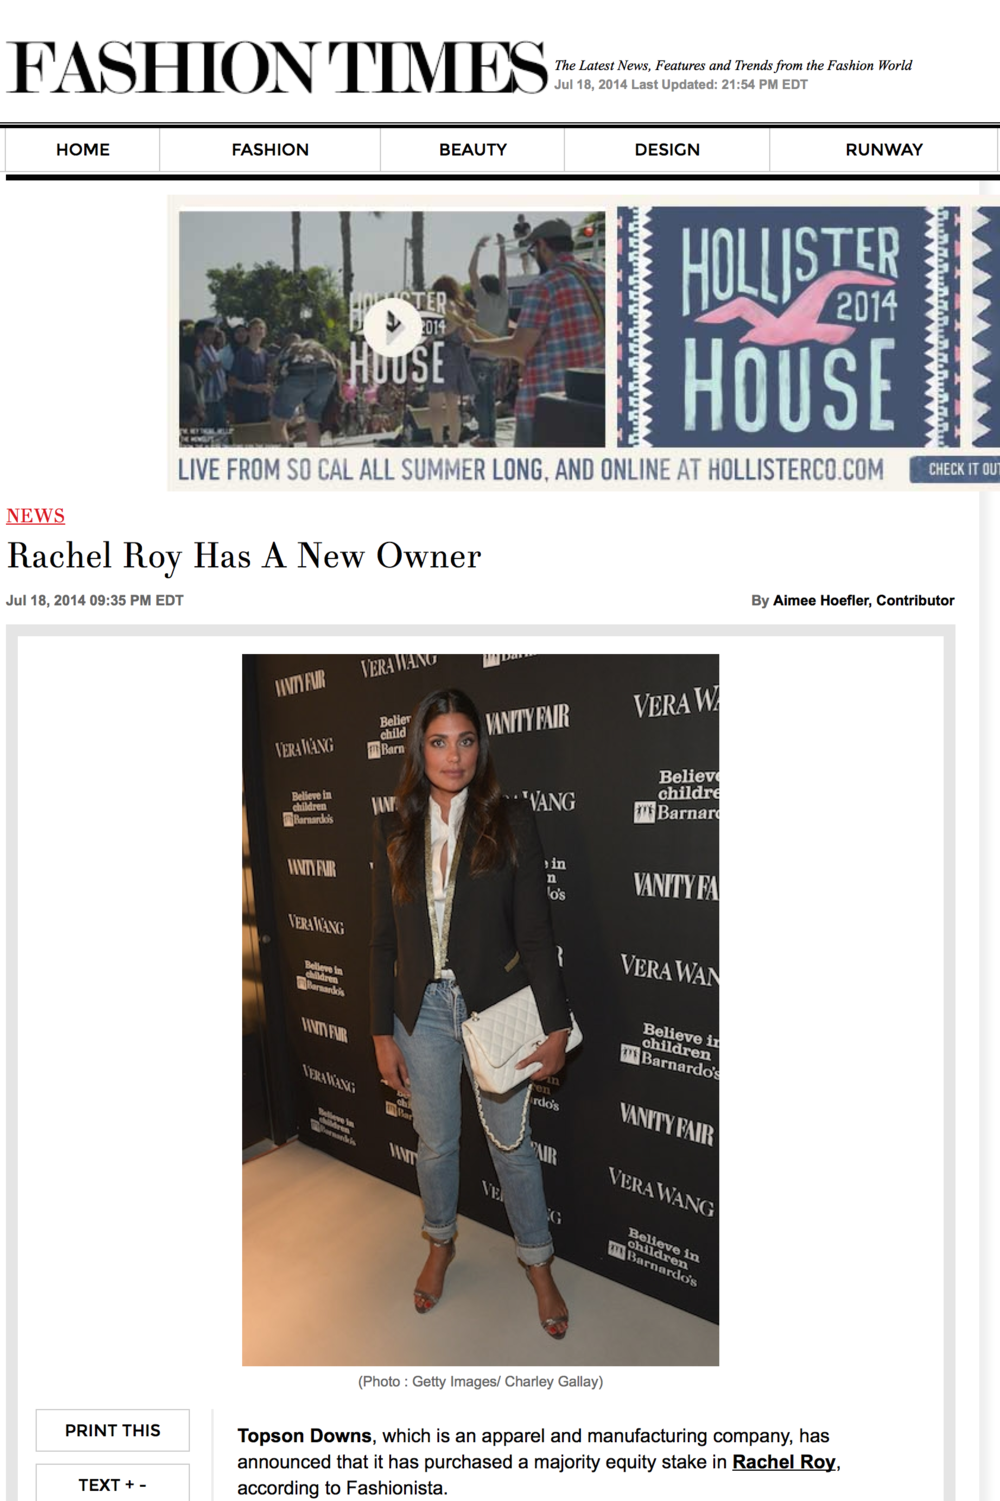 http---www.fashiontimes.com-articles-9936-20140718-rachel-roy-new-owner.htm (20140718).png